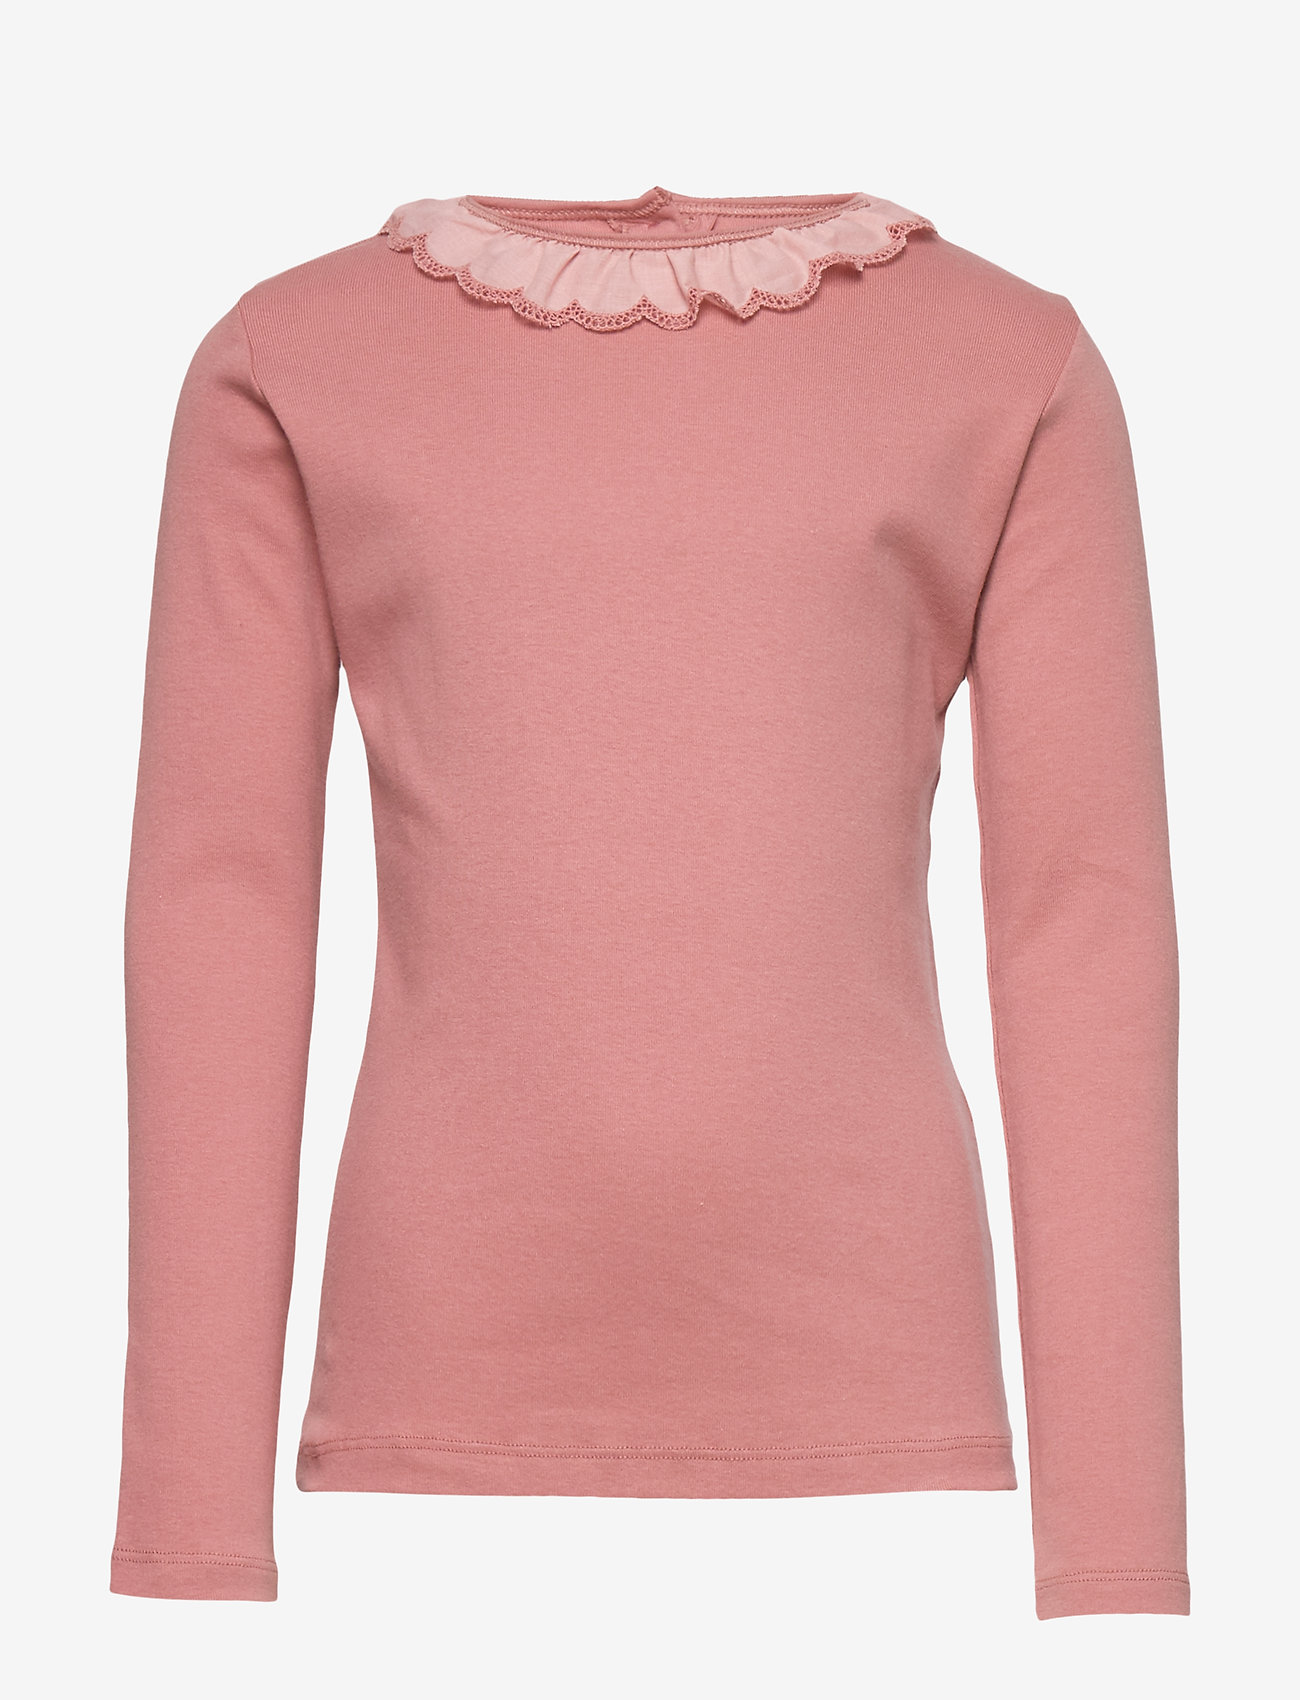 Noa Noa Miniature - T-shirt - long-sleeved t-shirts - dusty rose - 1